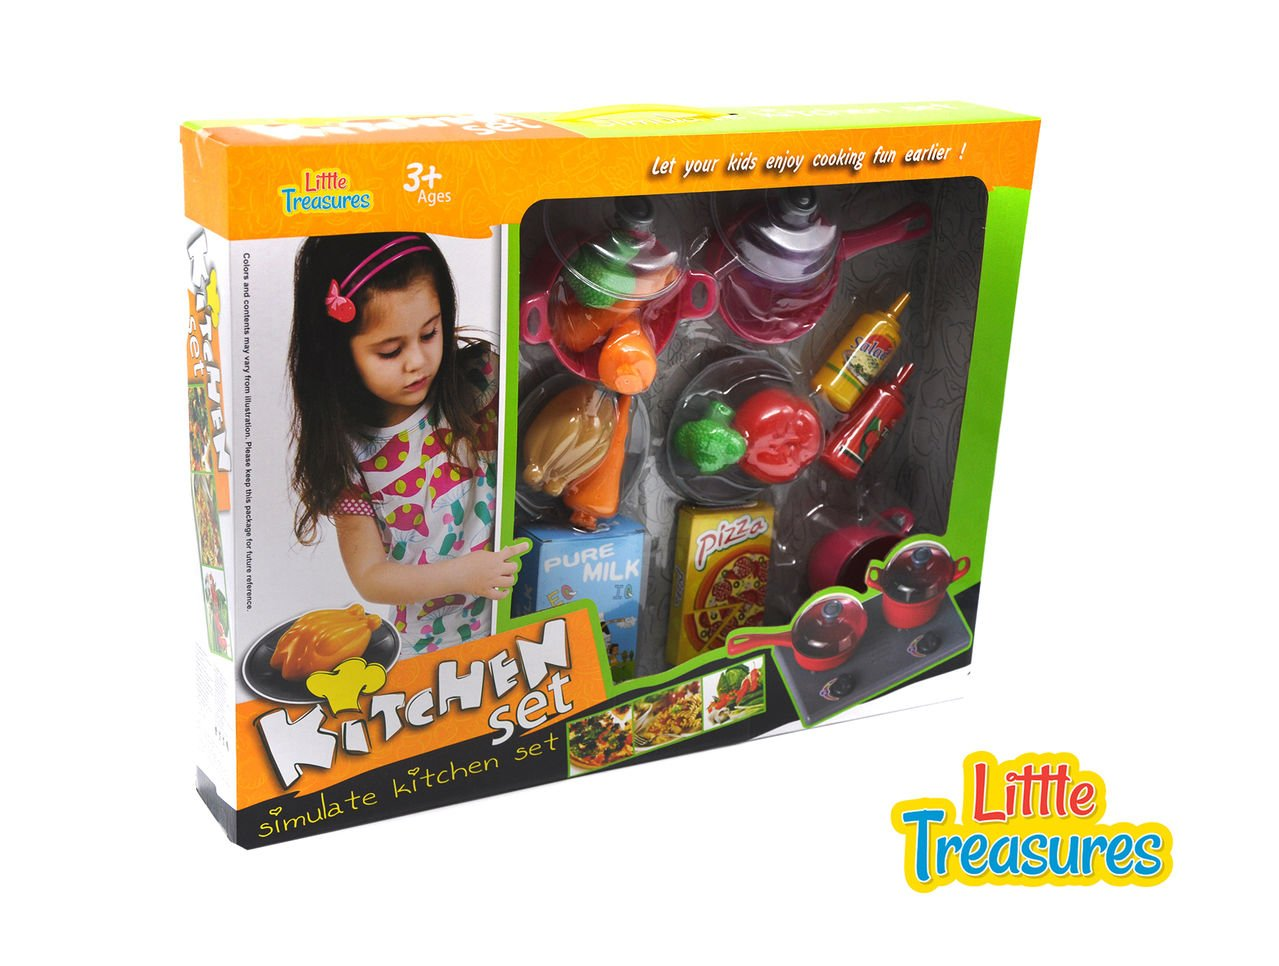 Kitchen toy Set for kids of ages 3+ made up of 34pcs includes a stove with two burners, two cooking pots, spoons, plates, vegetable and fruit models, milk, pizza cheese and ketchup & salad dressing.